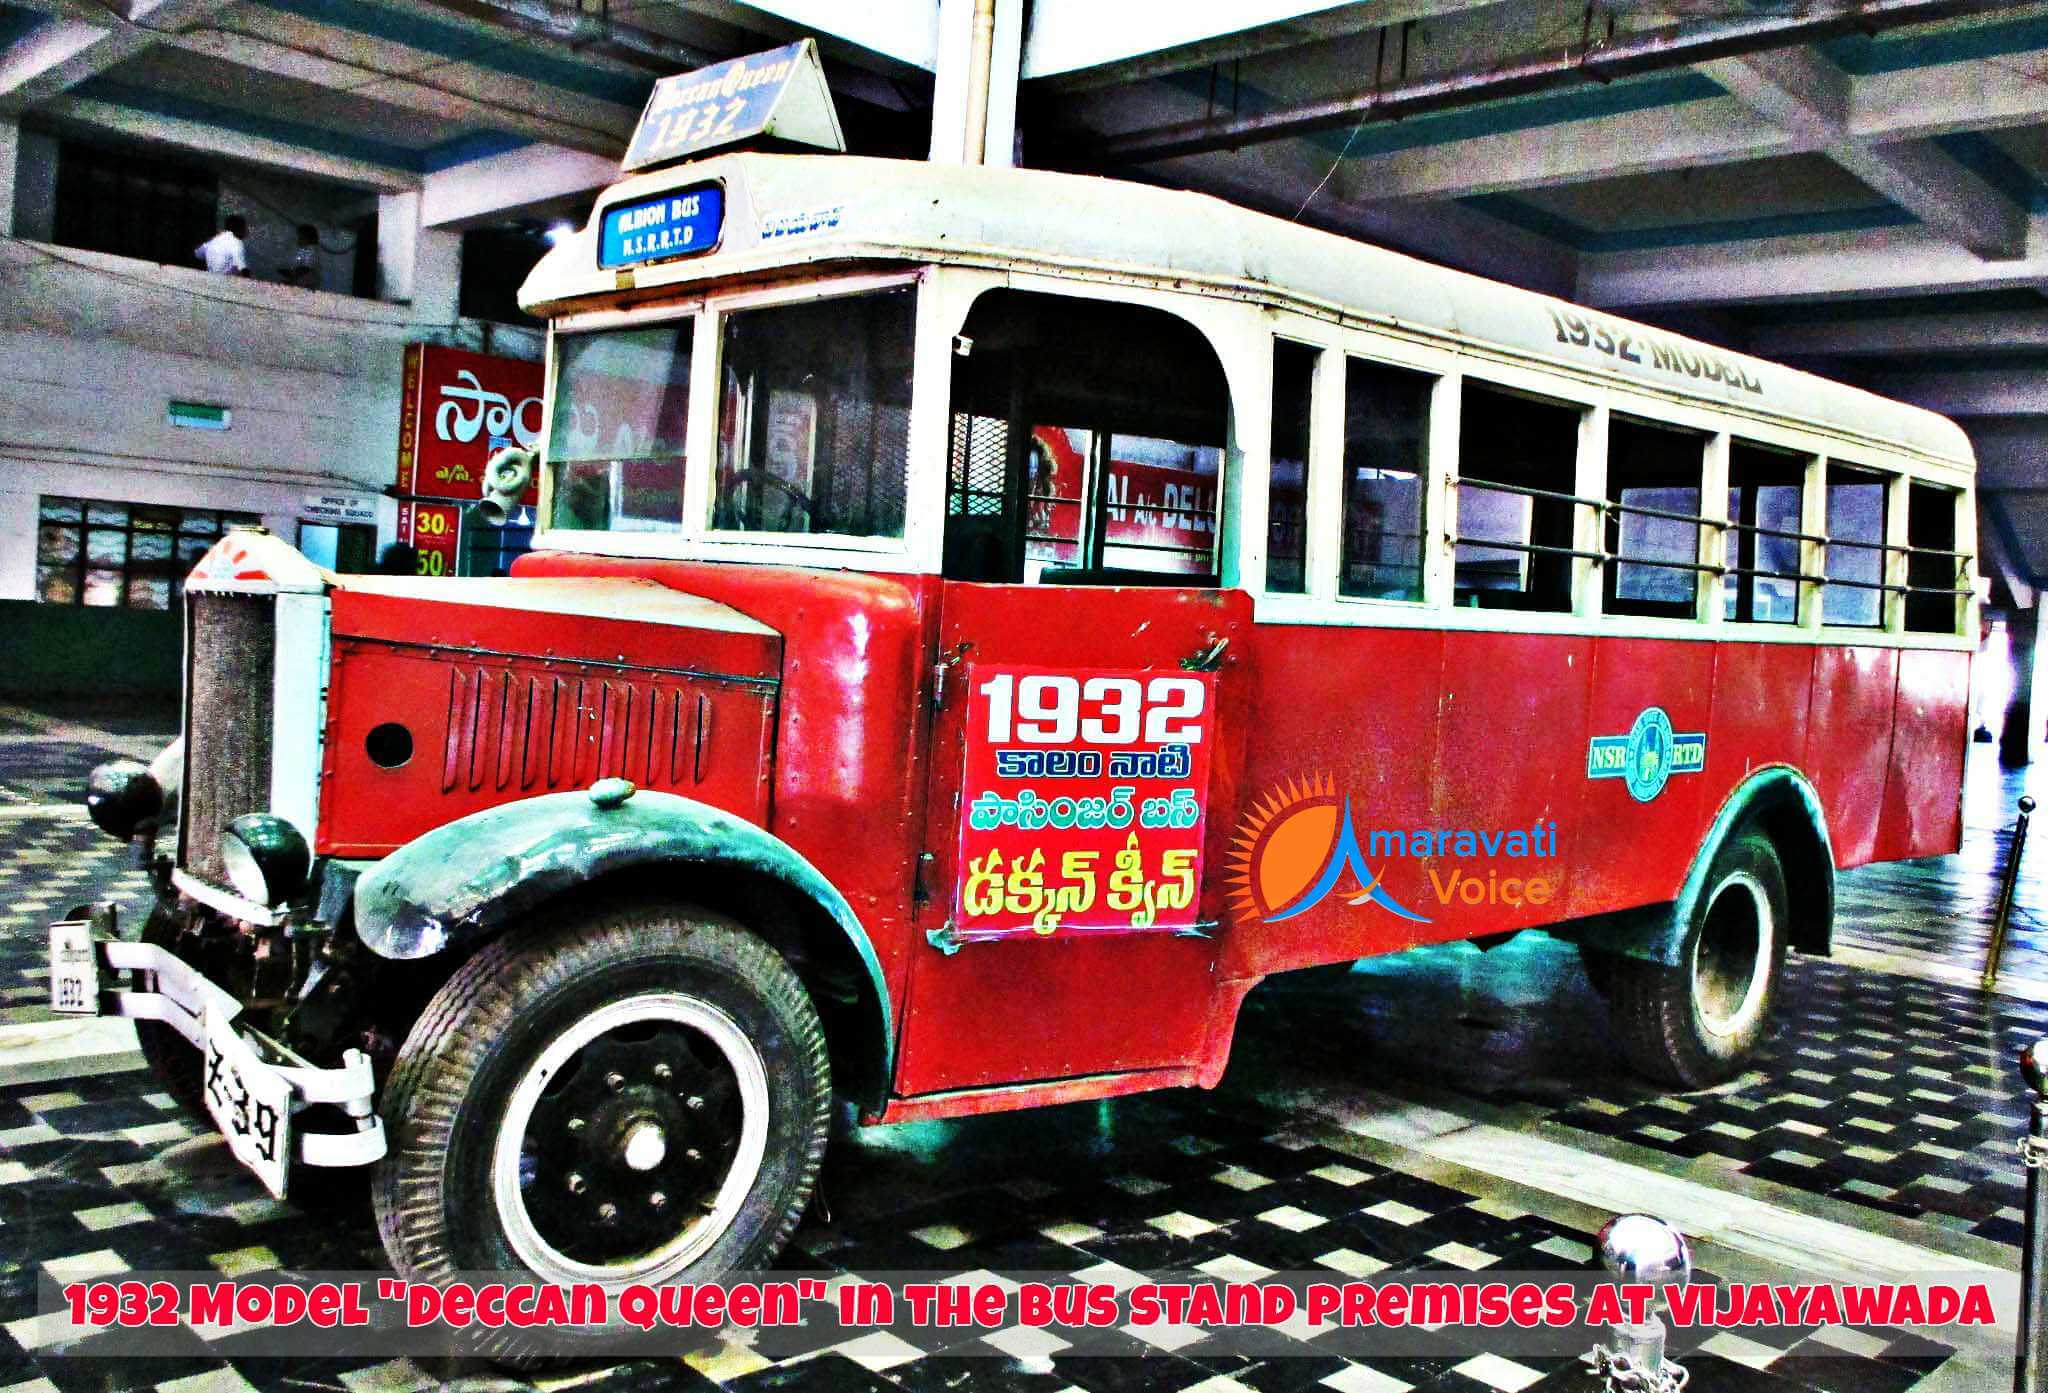 1932 Model Deccan Queen Model Bus in Vijayawada Bus Stand